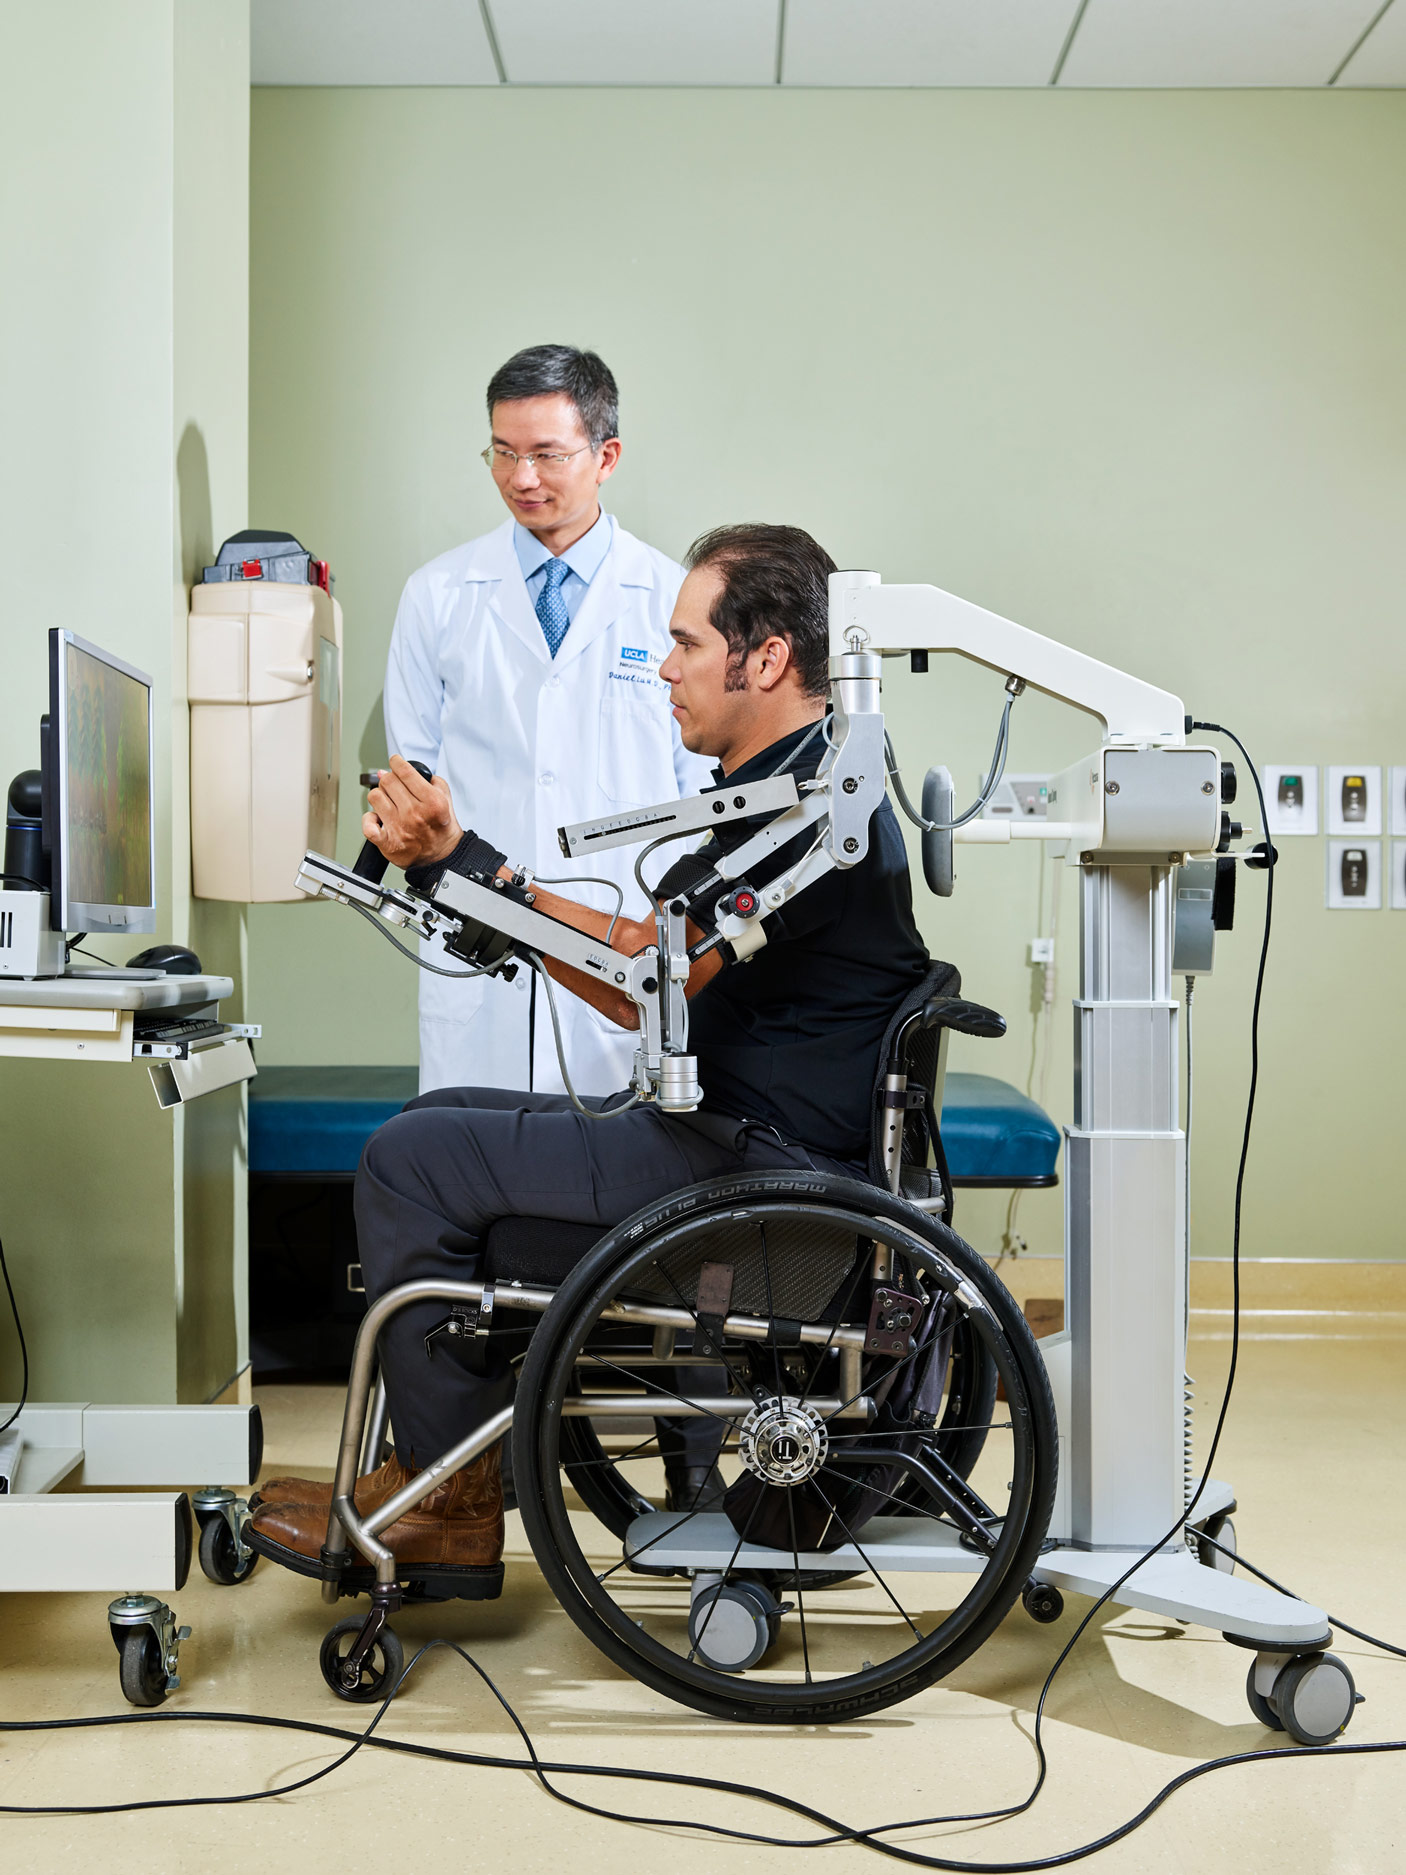 Patient Treatment at UCLA's Neuroplasticity and Repair Laboratory, Los Angeles, California, 2018